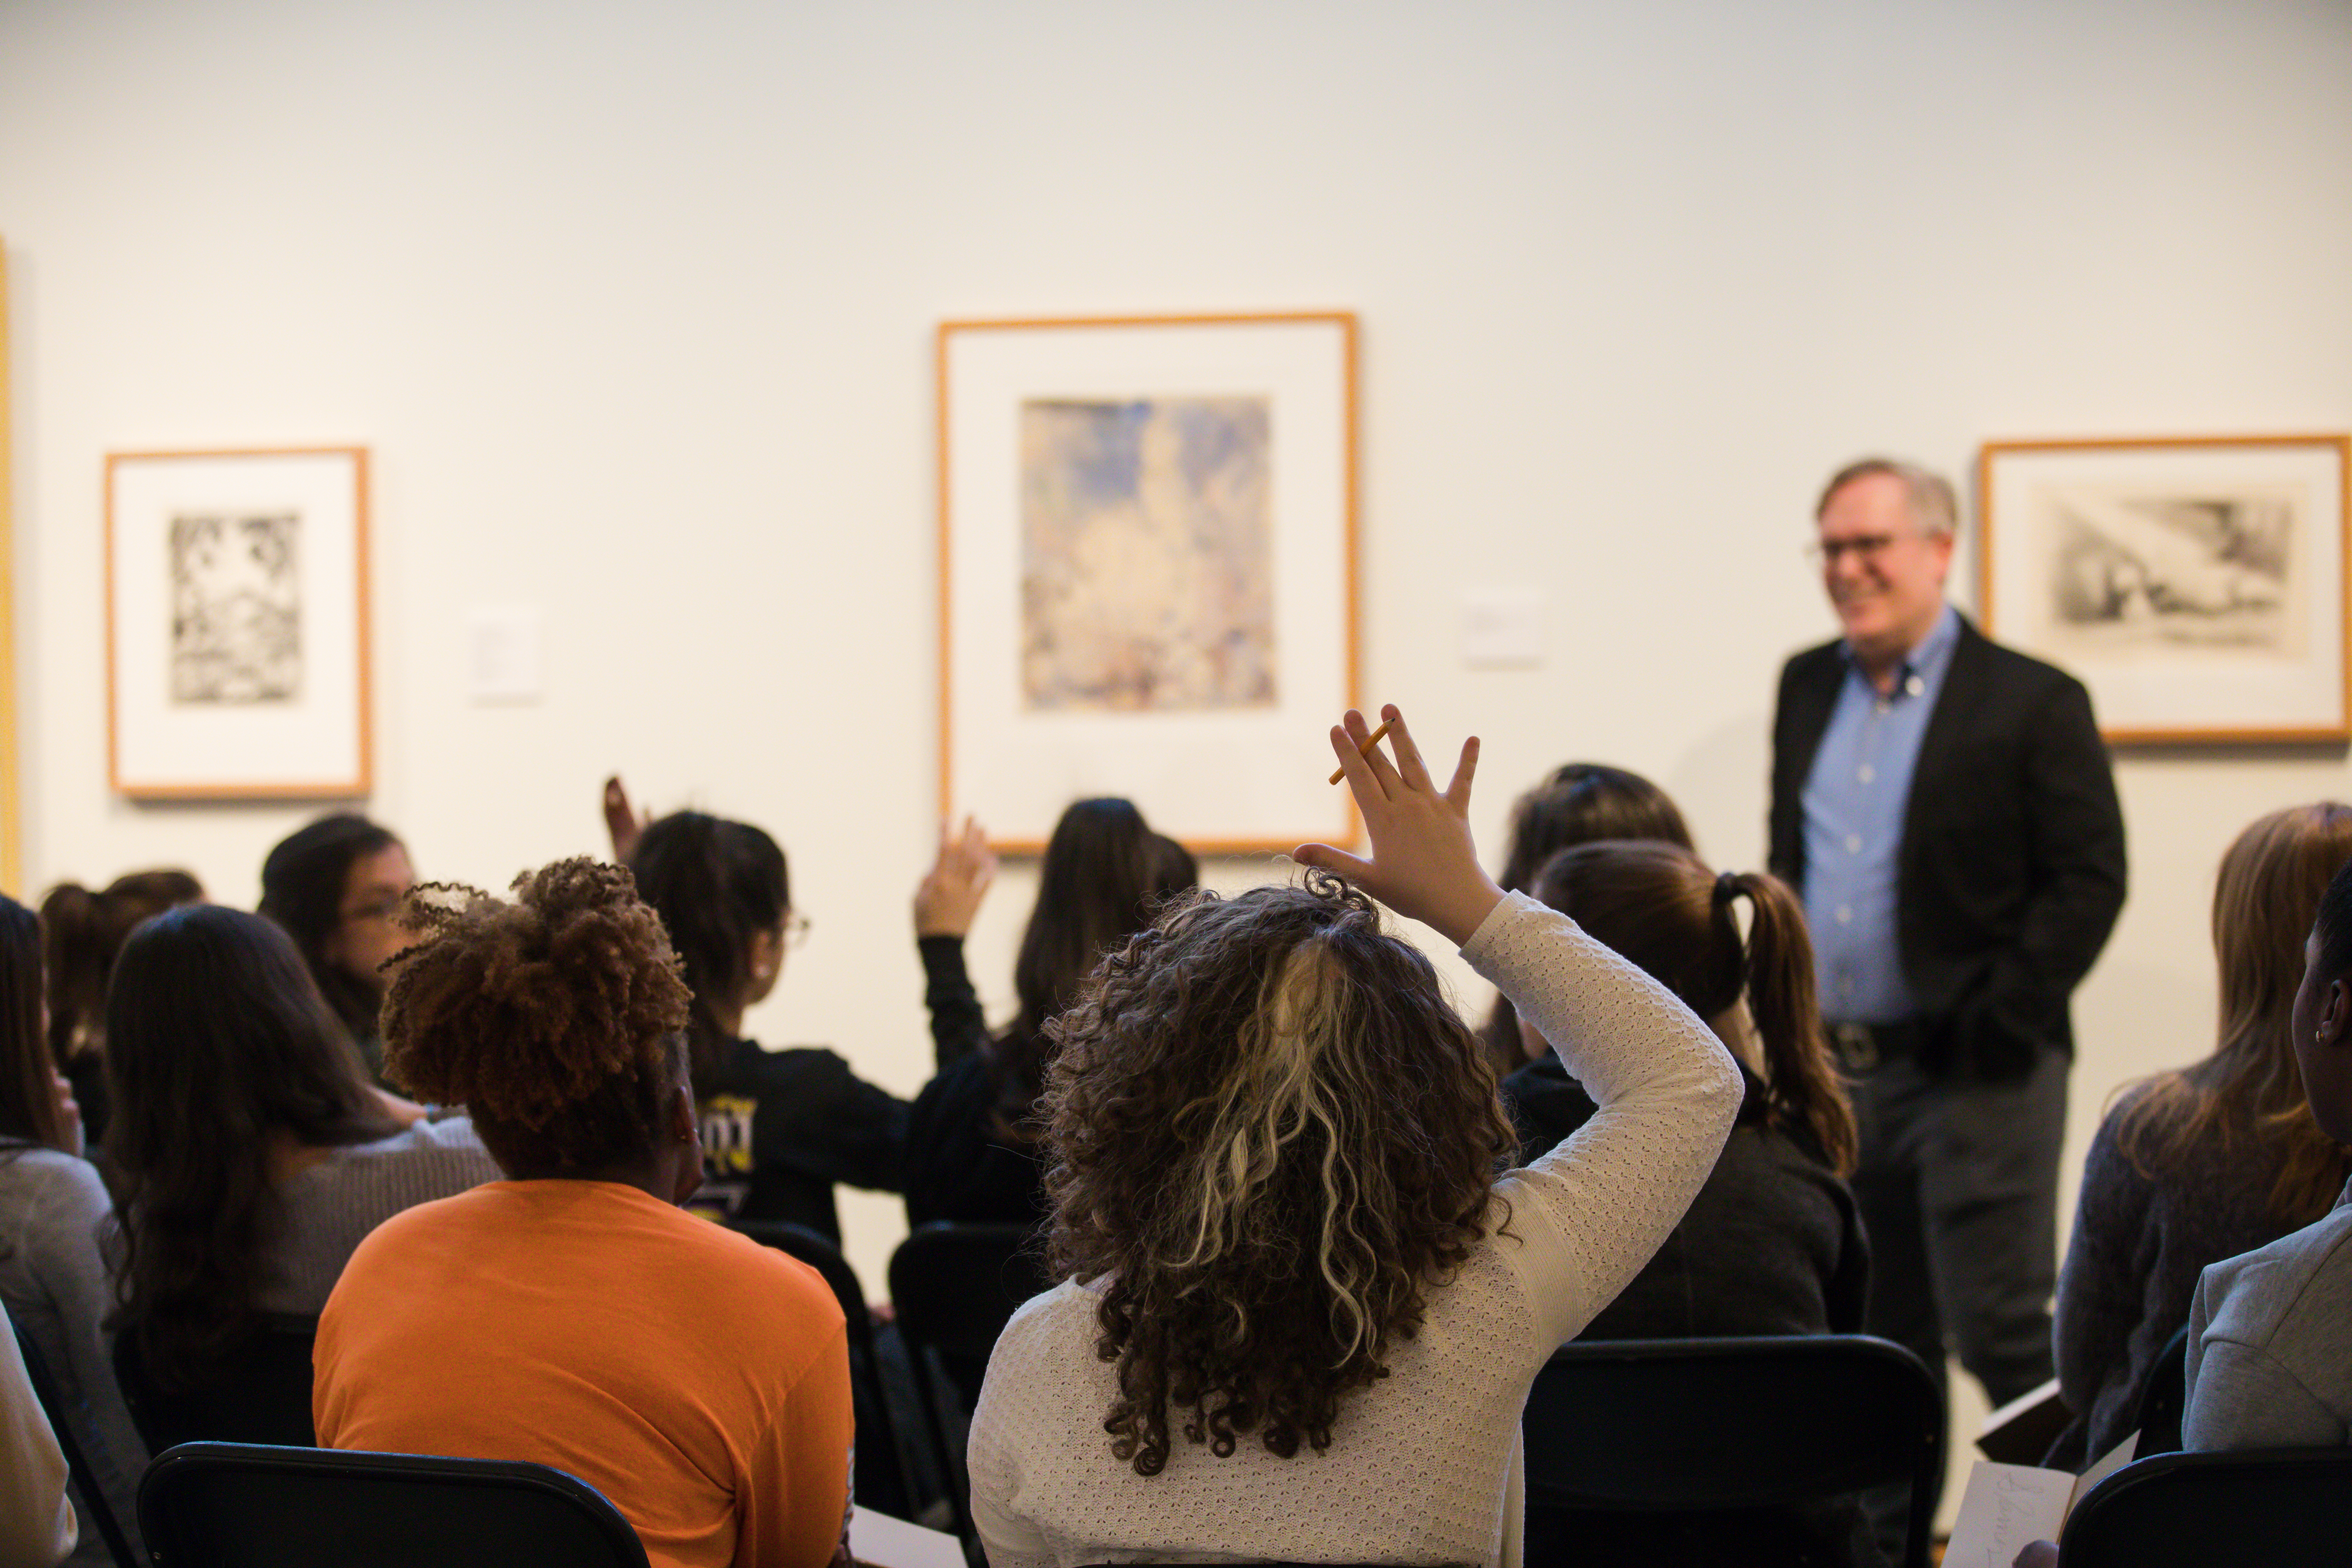 group of college students sitting on chairs in front of three works of art and a professor. One student has her hair raised.